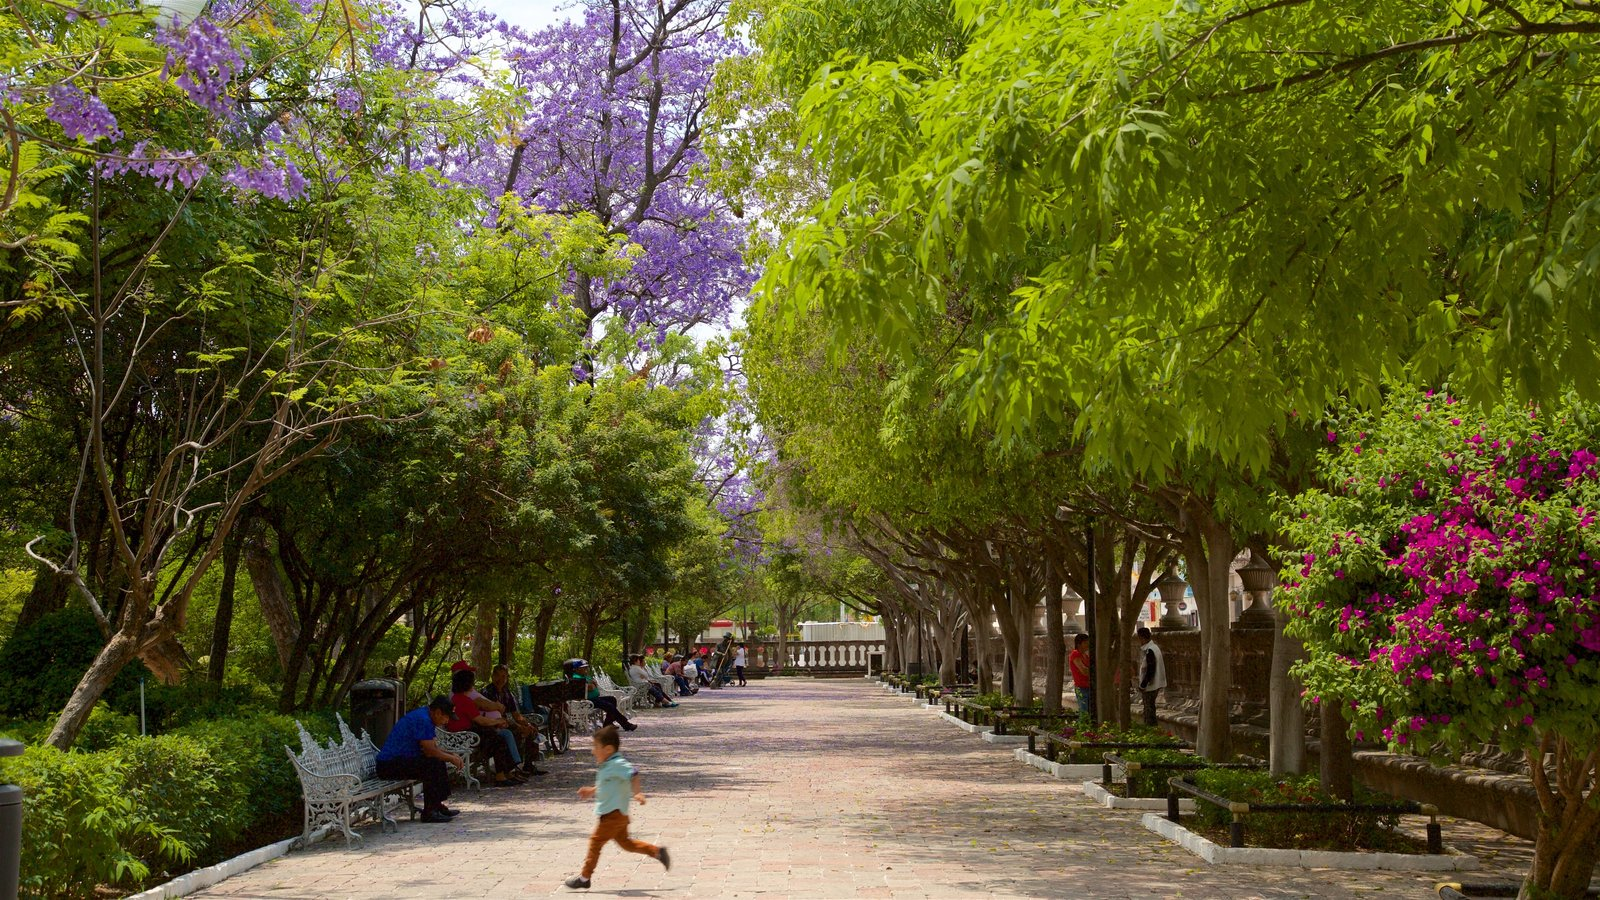 People Pictures: View Images of Jardin de San Marcos